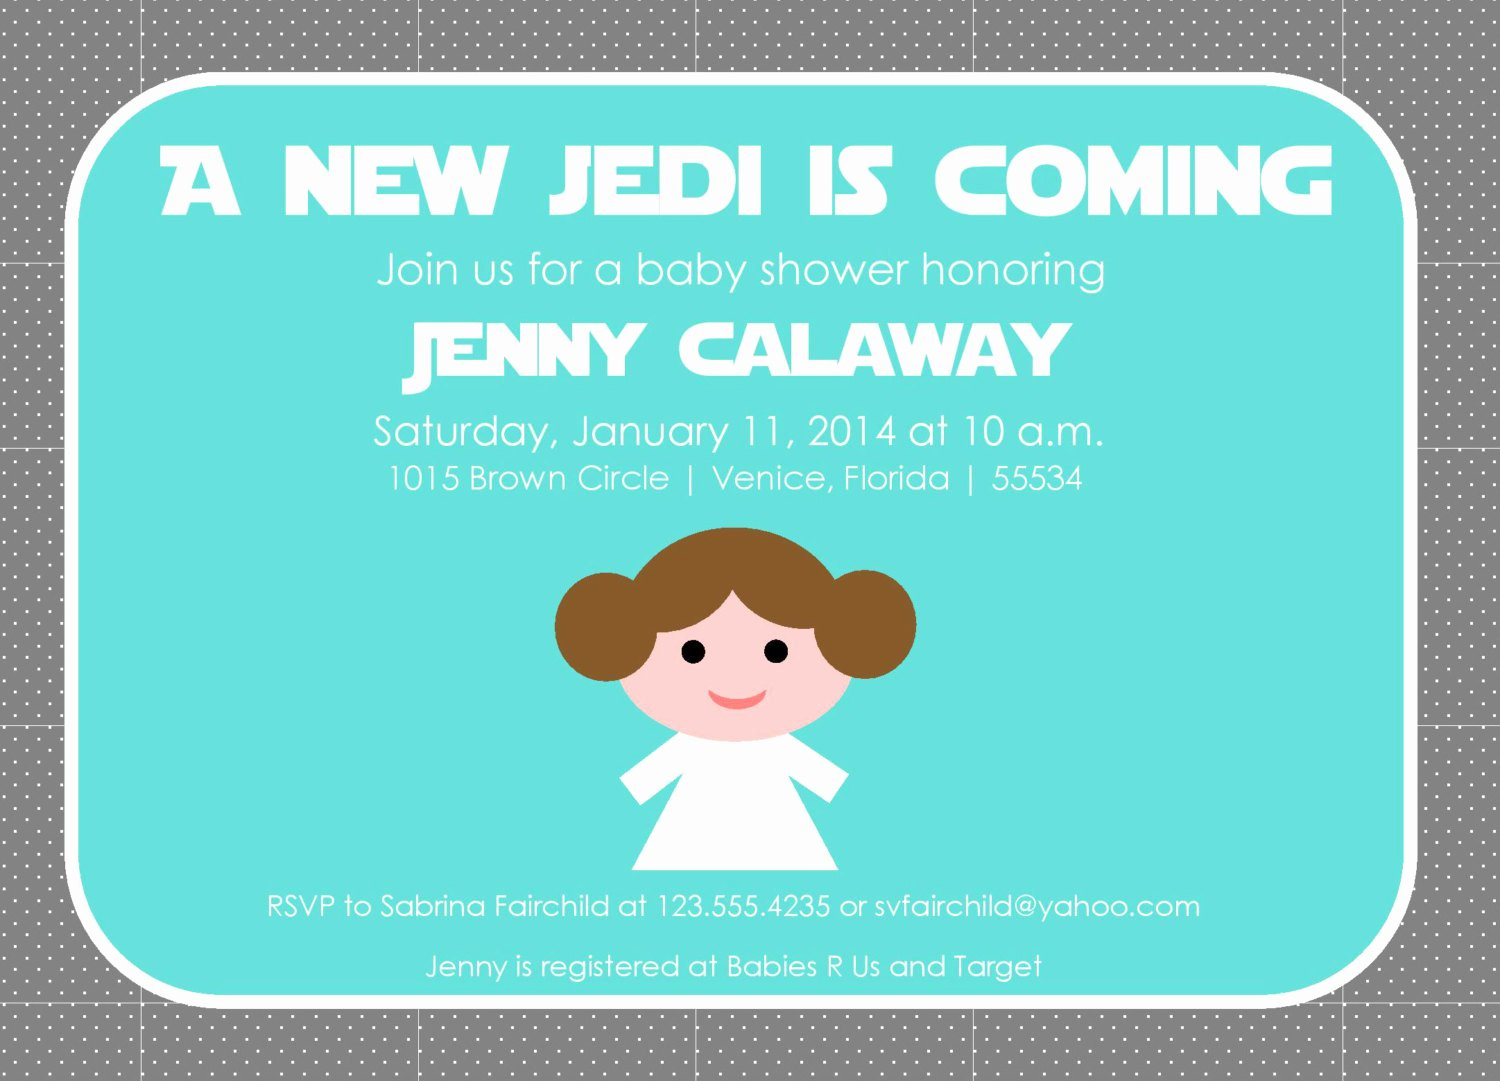 Princess Baby Shower Invitations Elegant Princess Leia Baby Shower Invitation